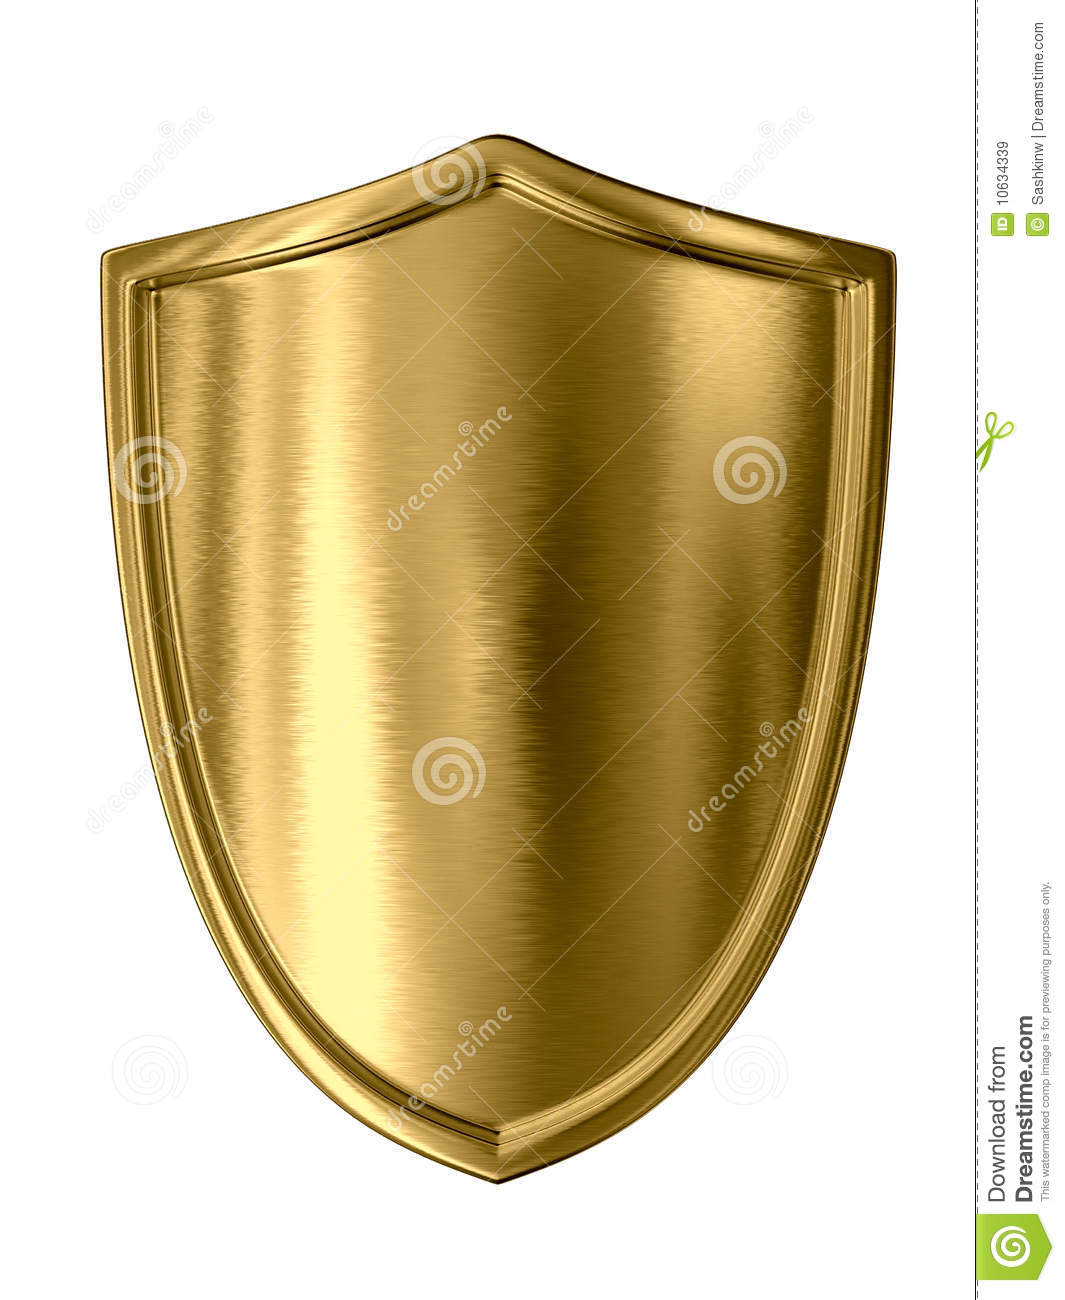 Shield design set royalty free stock photos image 5051988 - Royalty Free Stock Photo